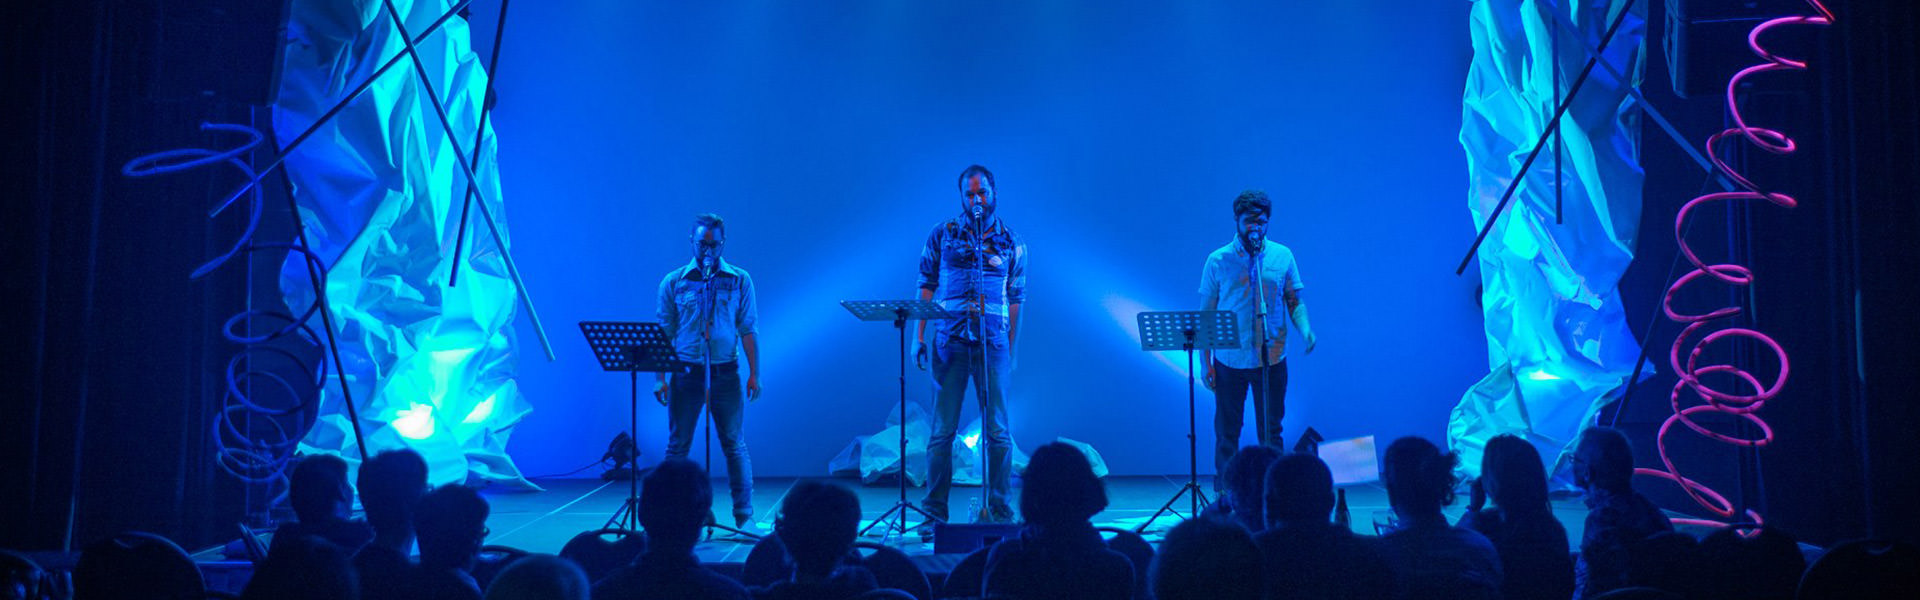 Three performing poets declaim their texts on a stage illumined by bright blue lights.